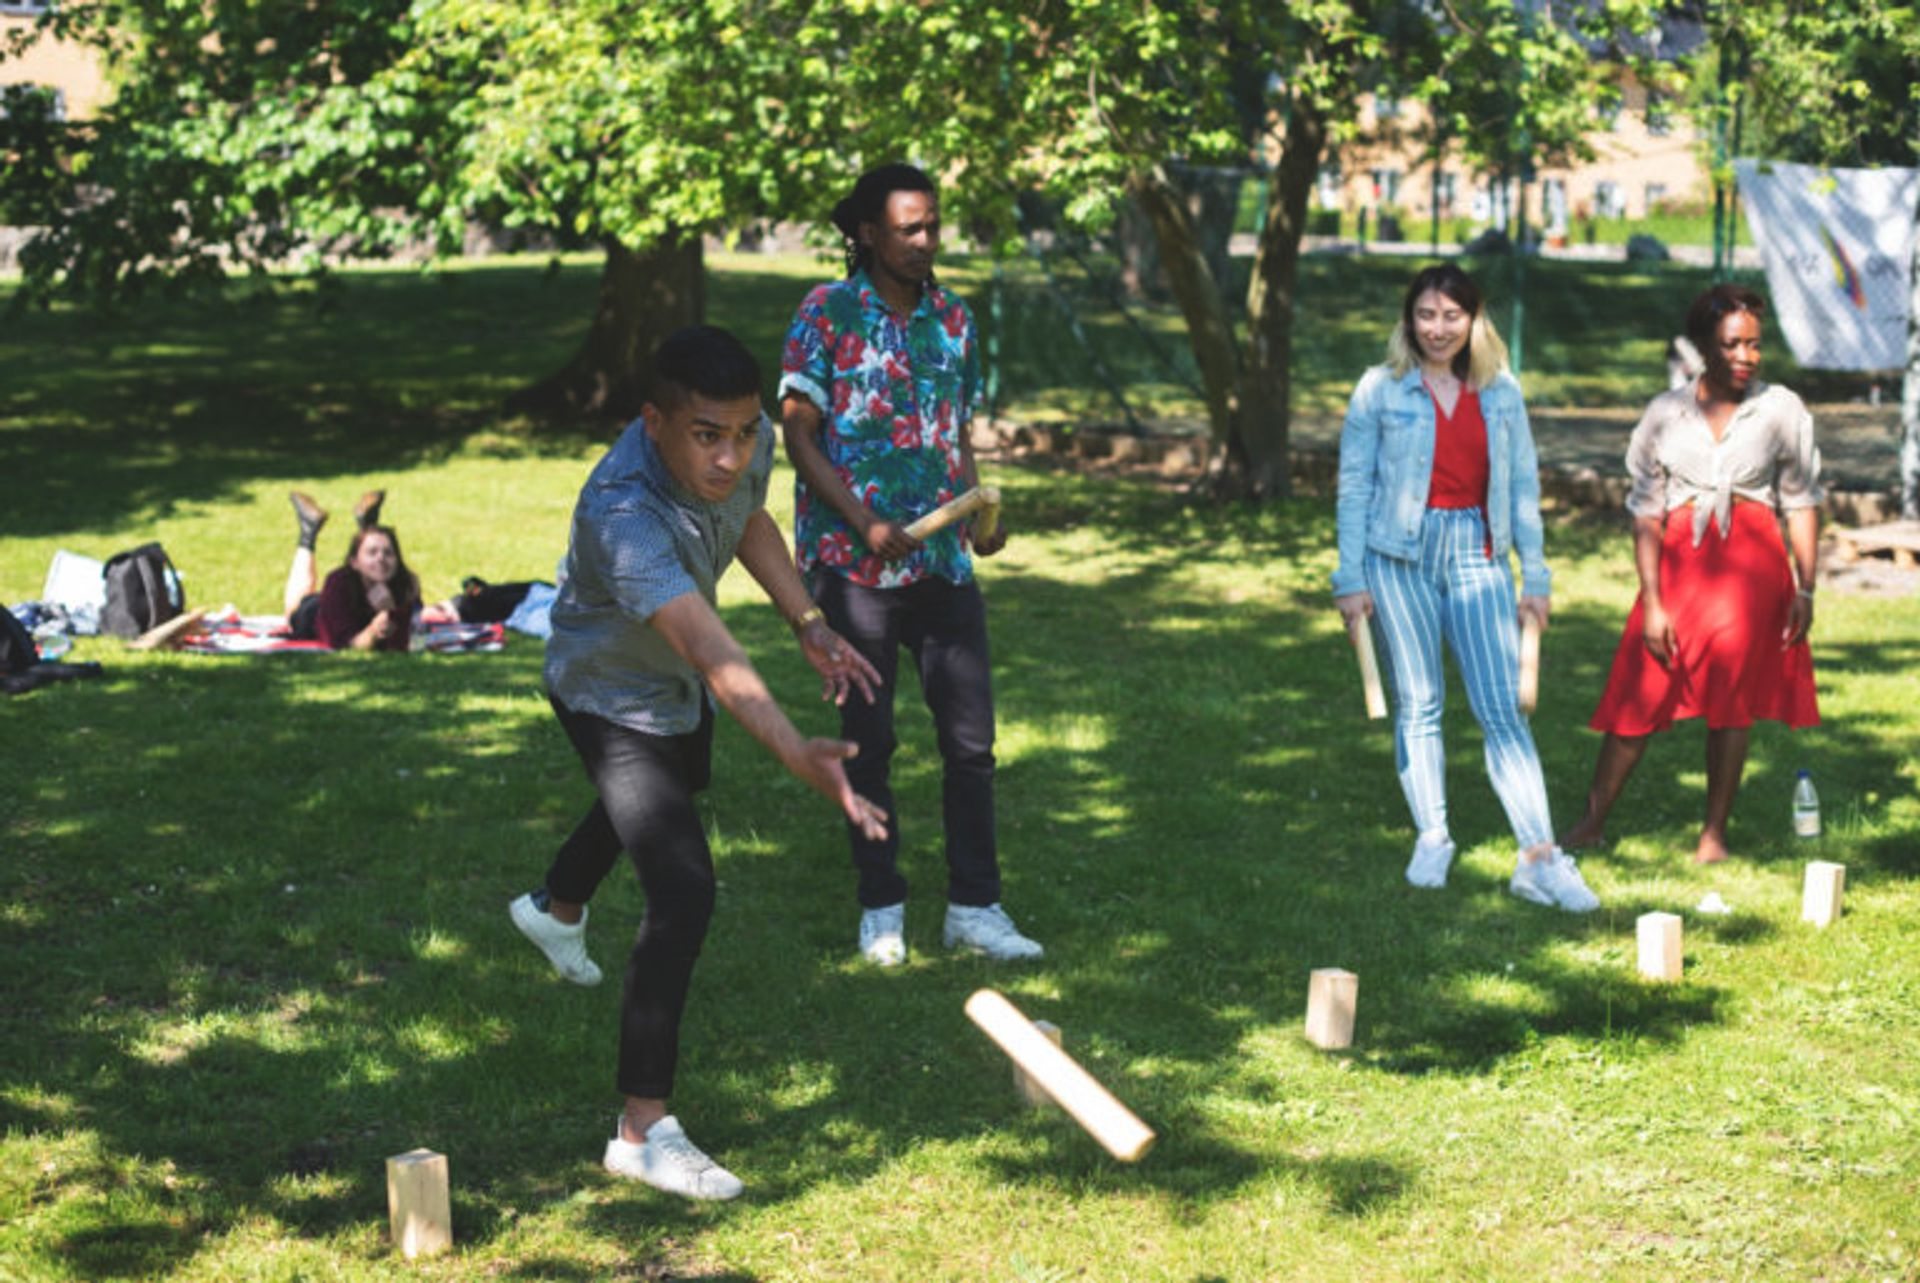 Students playing the Swedish game 'Kubb' in a park.